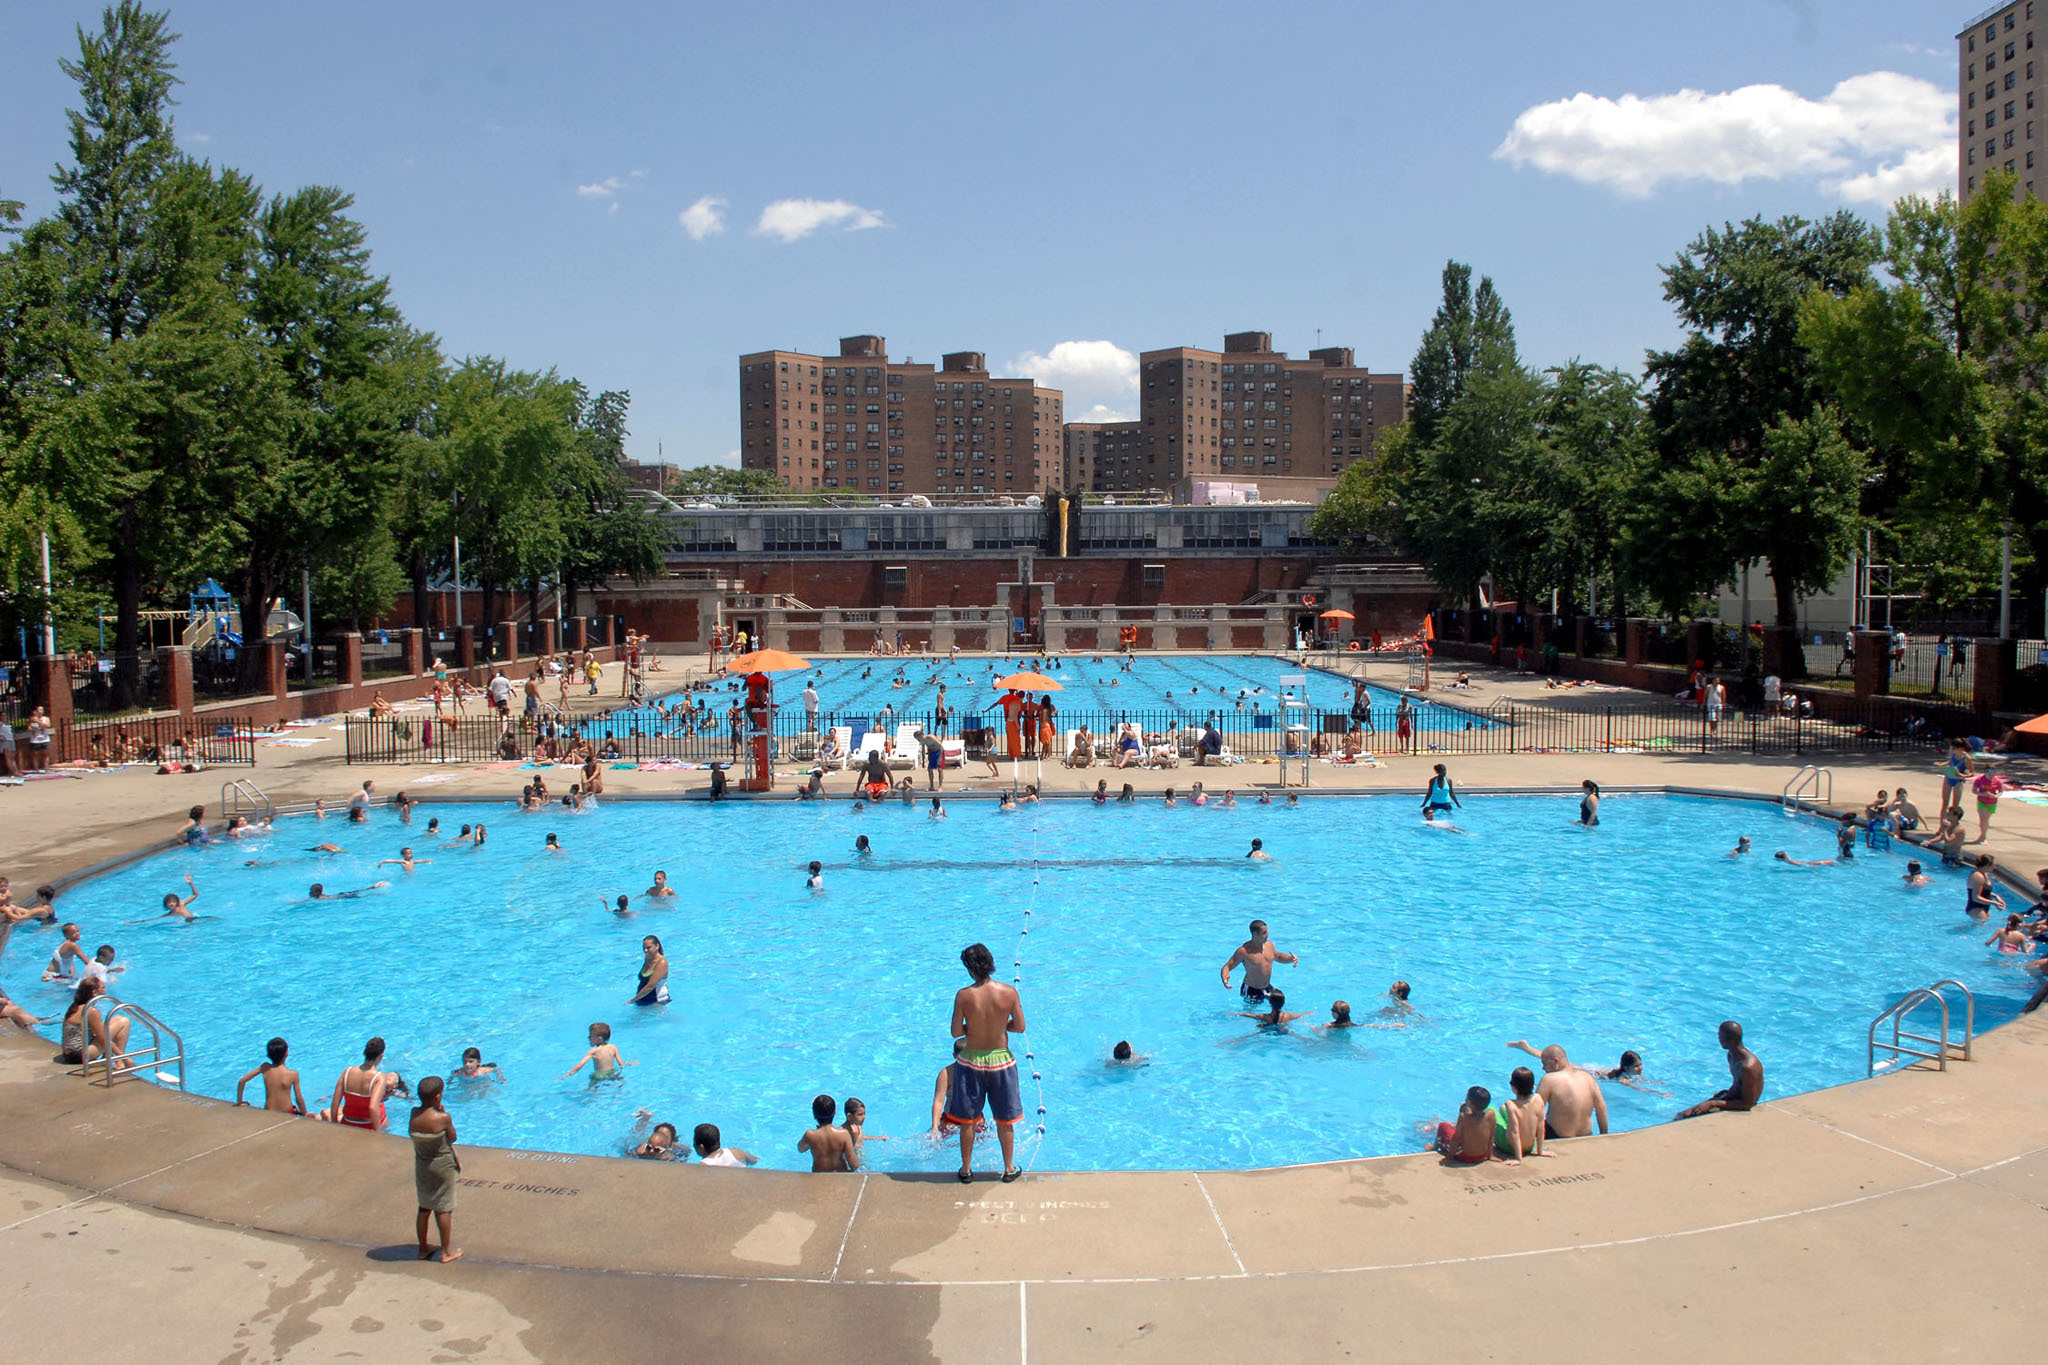 Popular 12 Of The Best Public Pools NYC Has For Swimming in Summer MP75